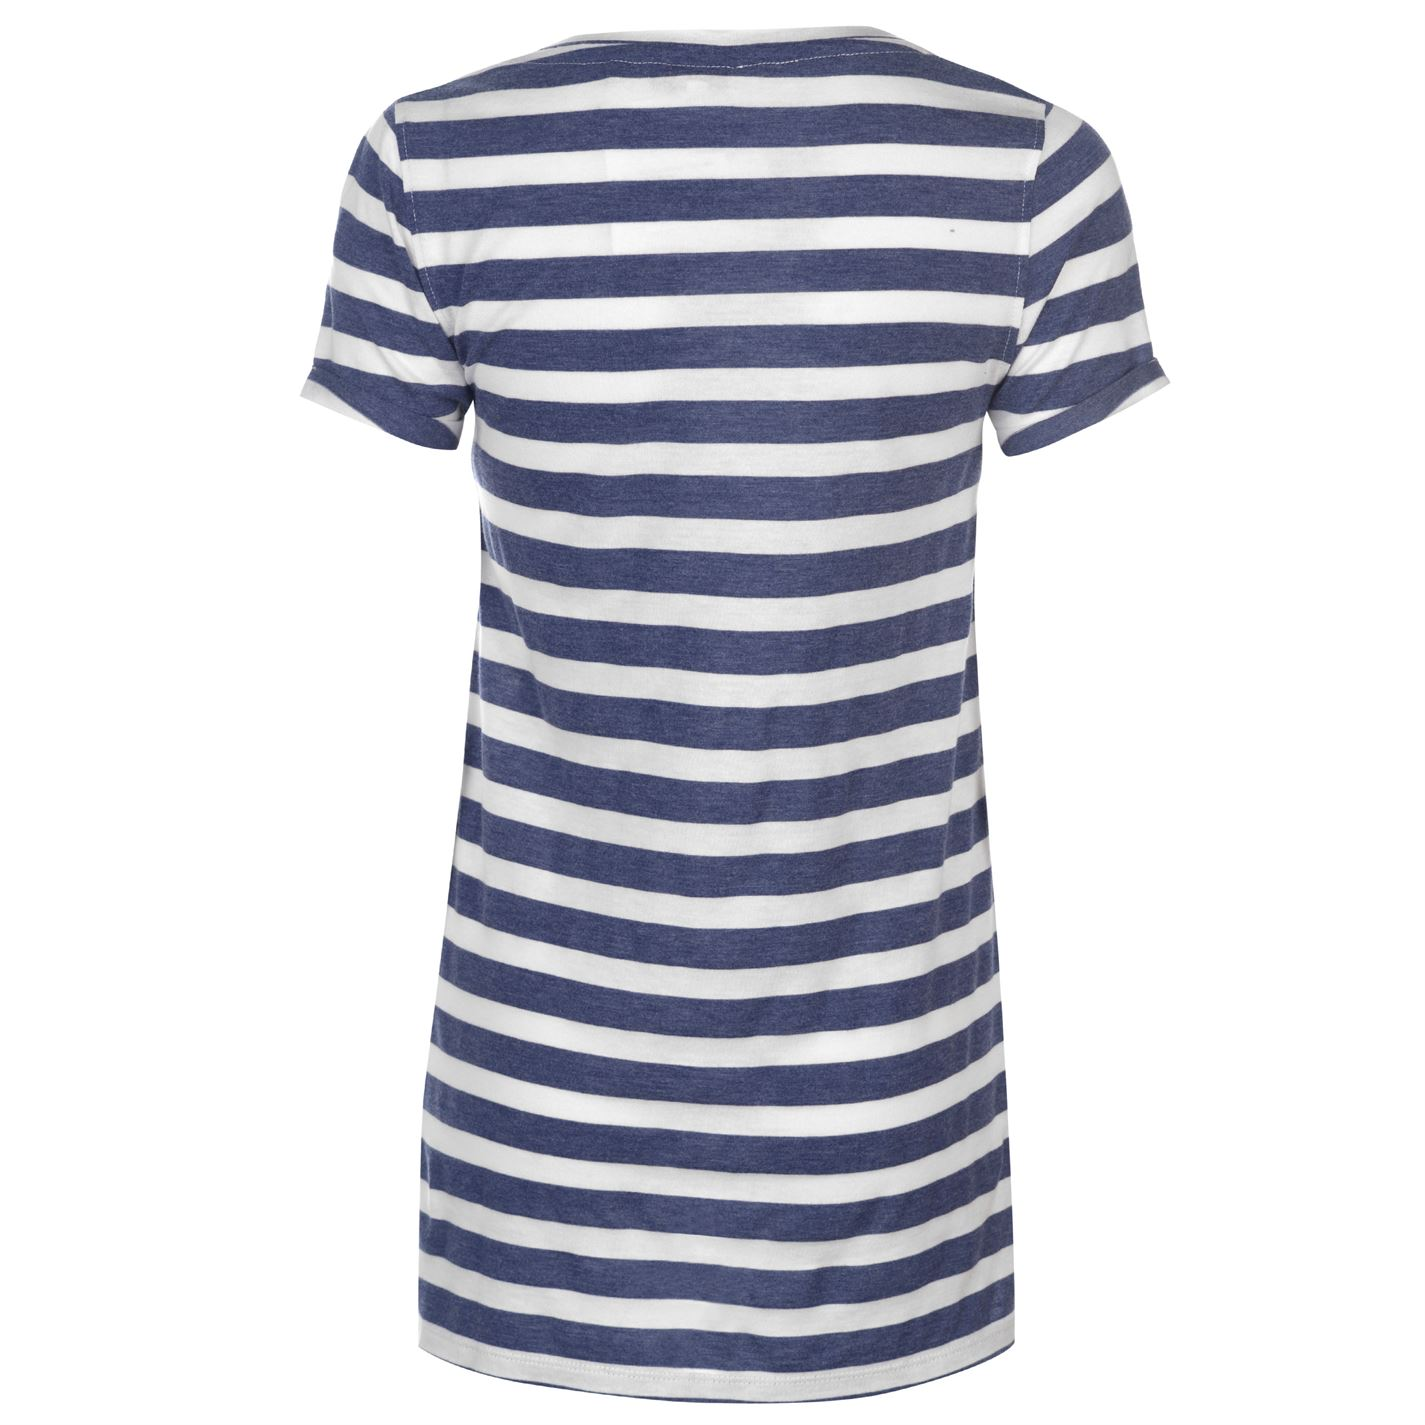 SoulCal V Neck Stripe T Shirt Ladies Tee Top Short Sleeve Pattern Athletic